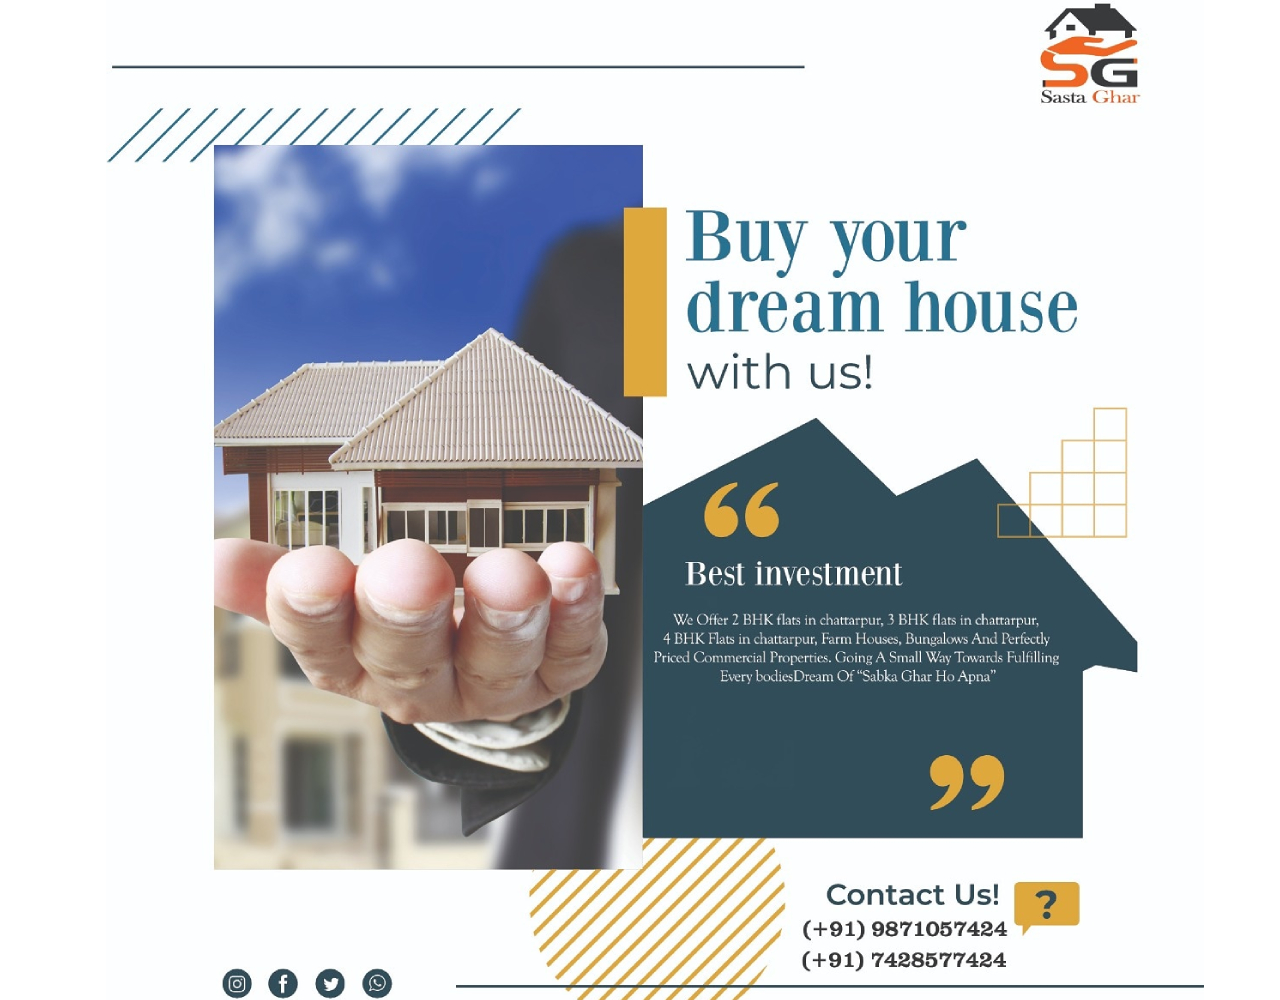 Property In South Delhi For Sale Image